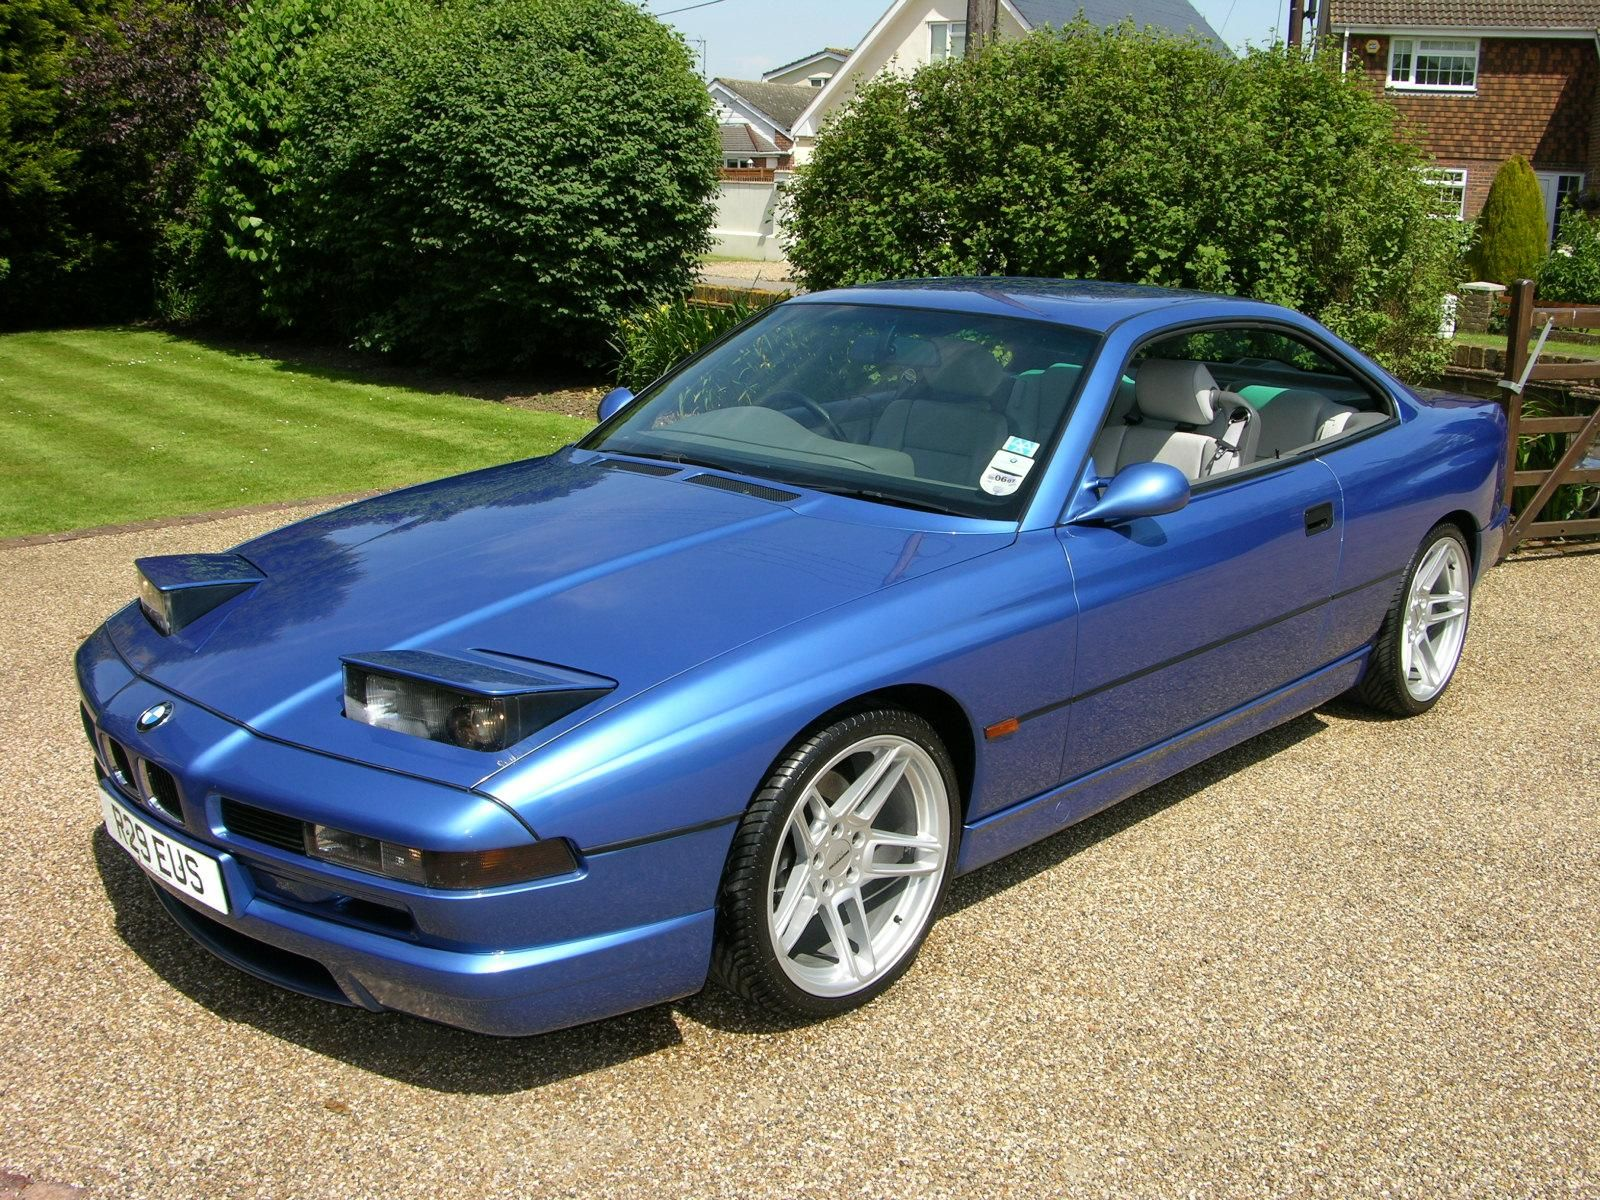 BMW 840 Ci Sport  machines  Pinterest  Cars Coupe and BMW